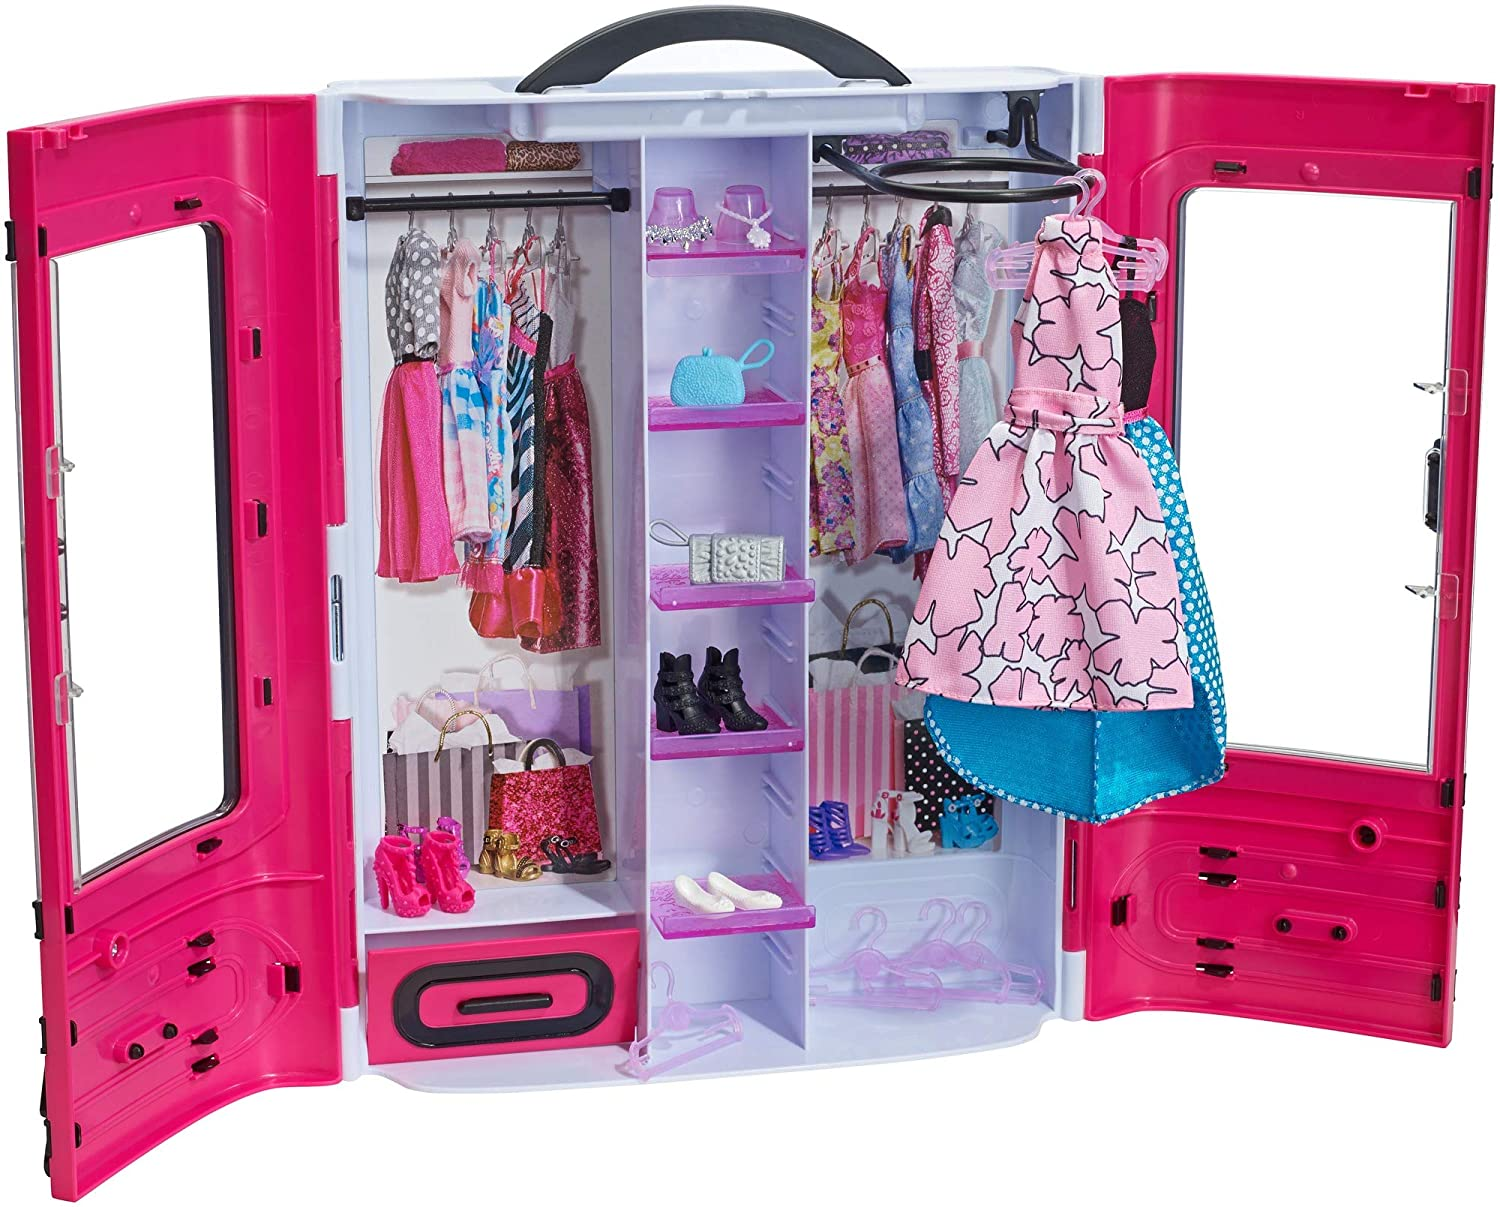 How to make a Barbie cabinet: several options